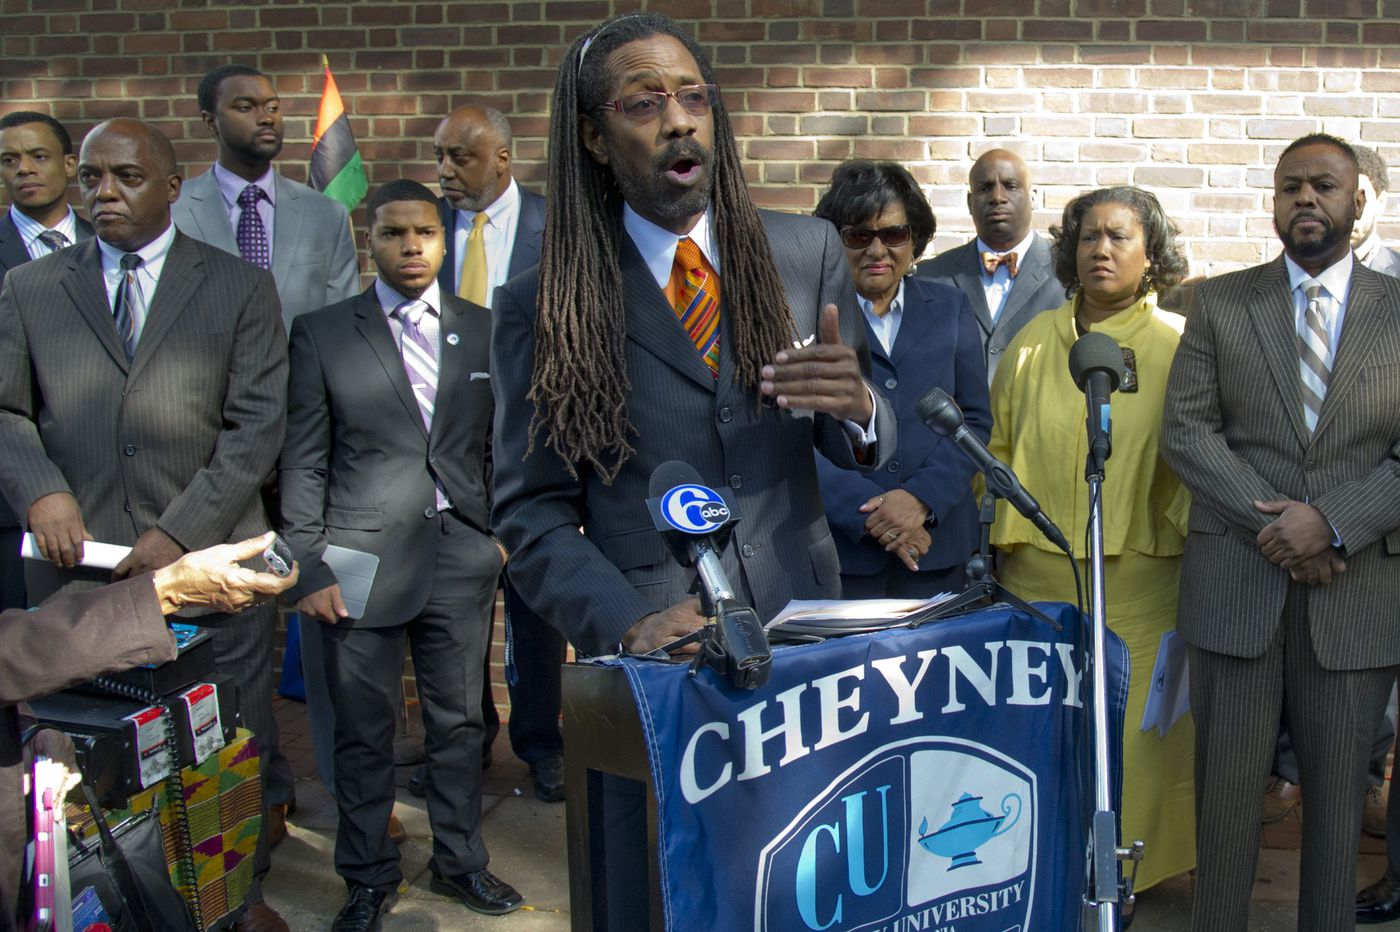 Cheyney University is a phoenix rising thanks to new partnerships | Opinion